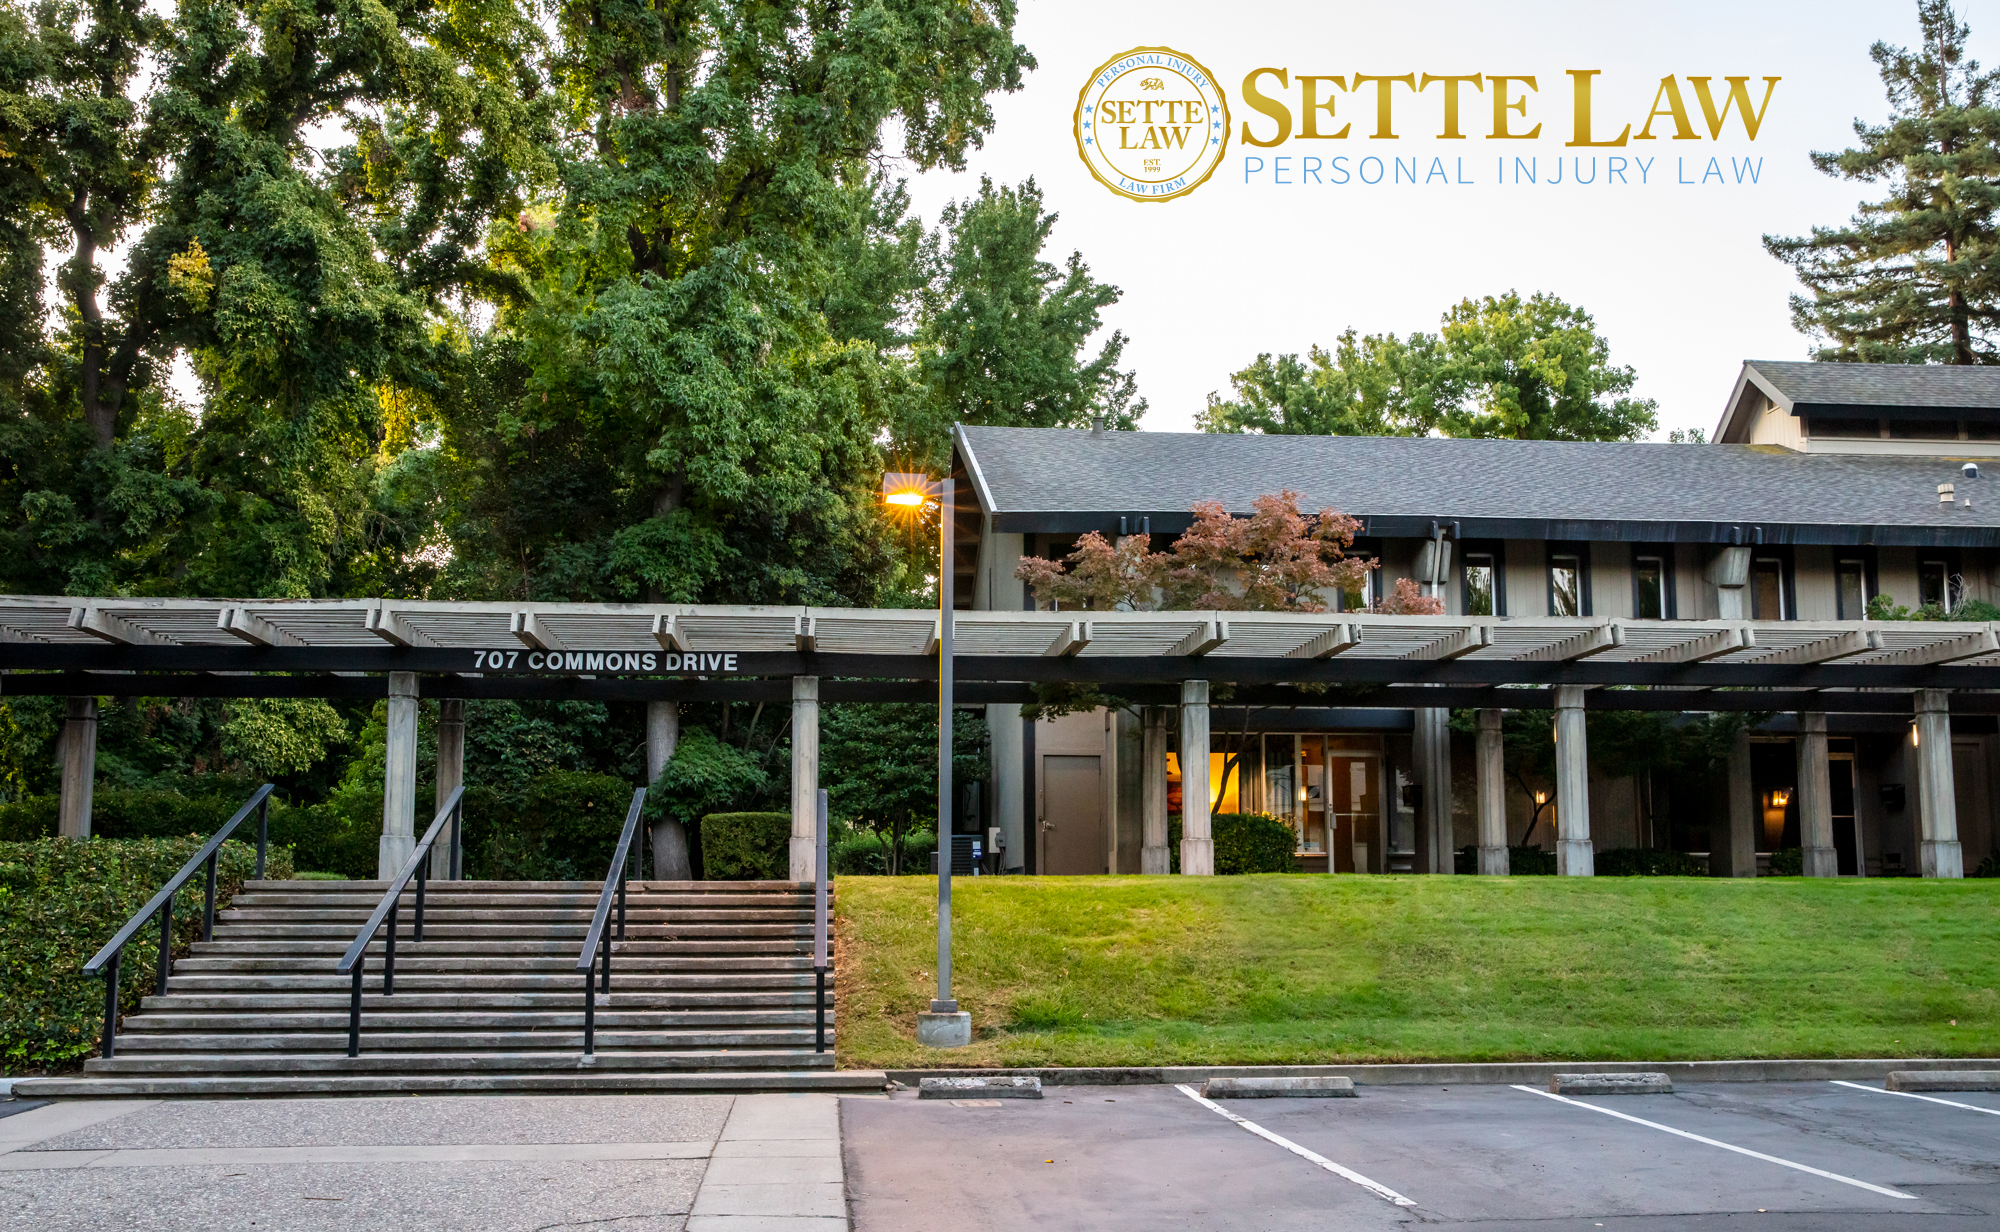 Sette Law reviews | Personal Injury Law at 707 Commons Dr. - Sacramento CA